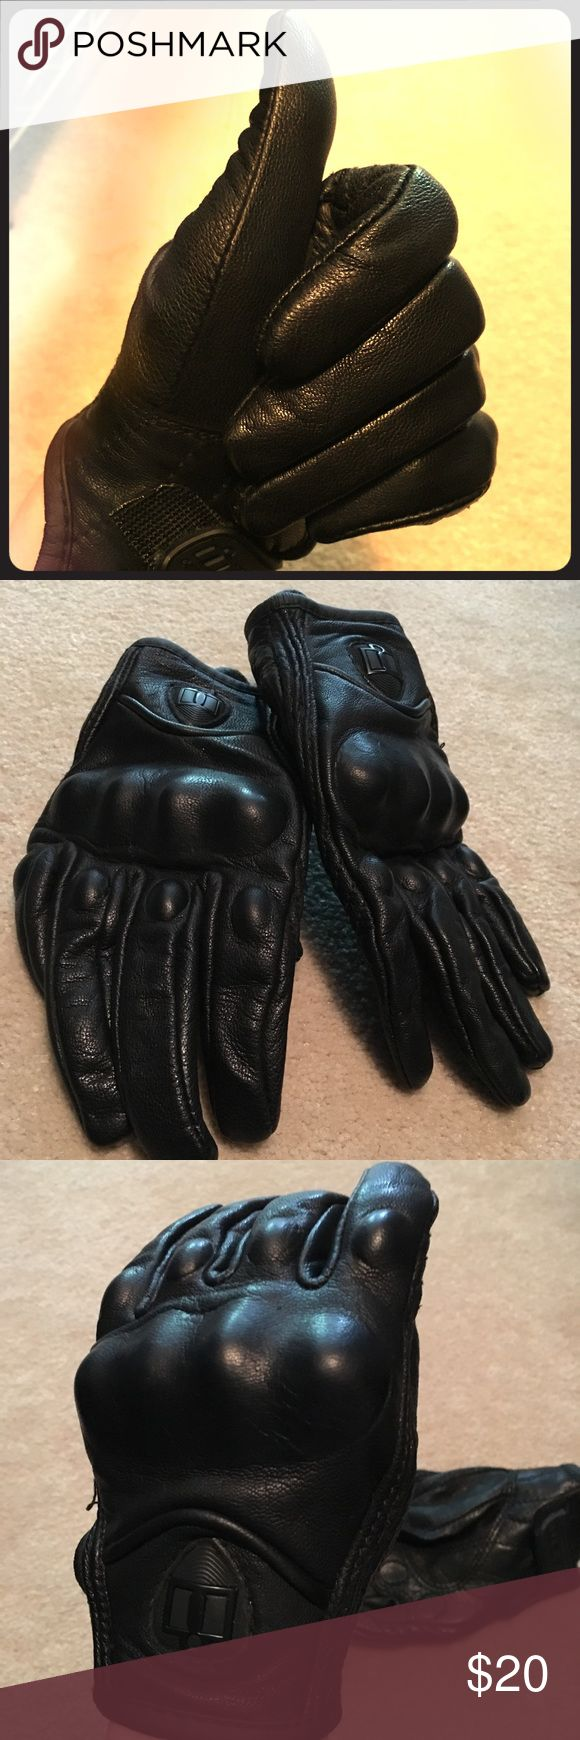 Diavolo leather motorcycle gloves - Tight Leather Motorcycle Gloves